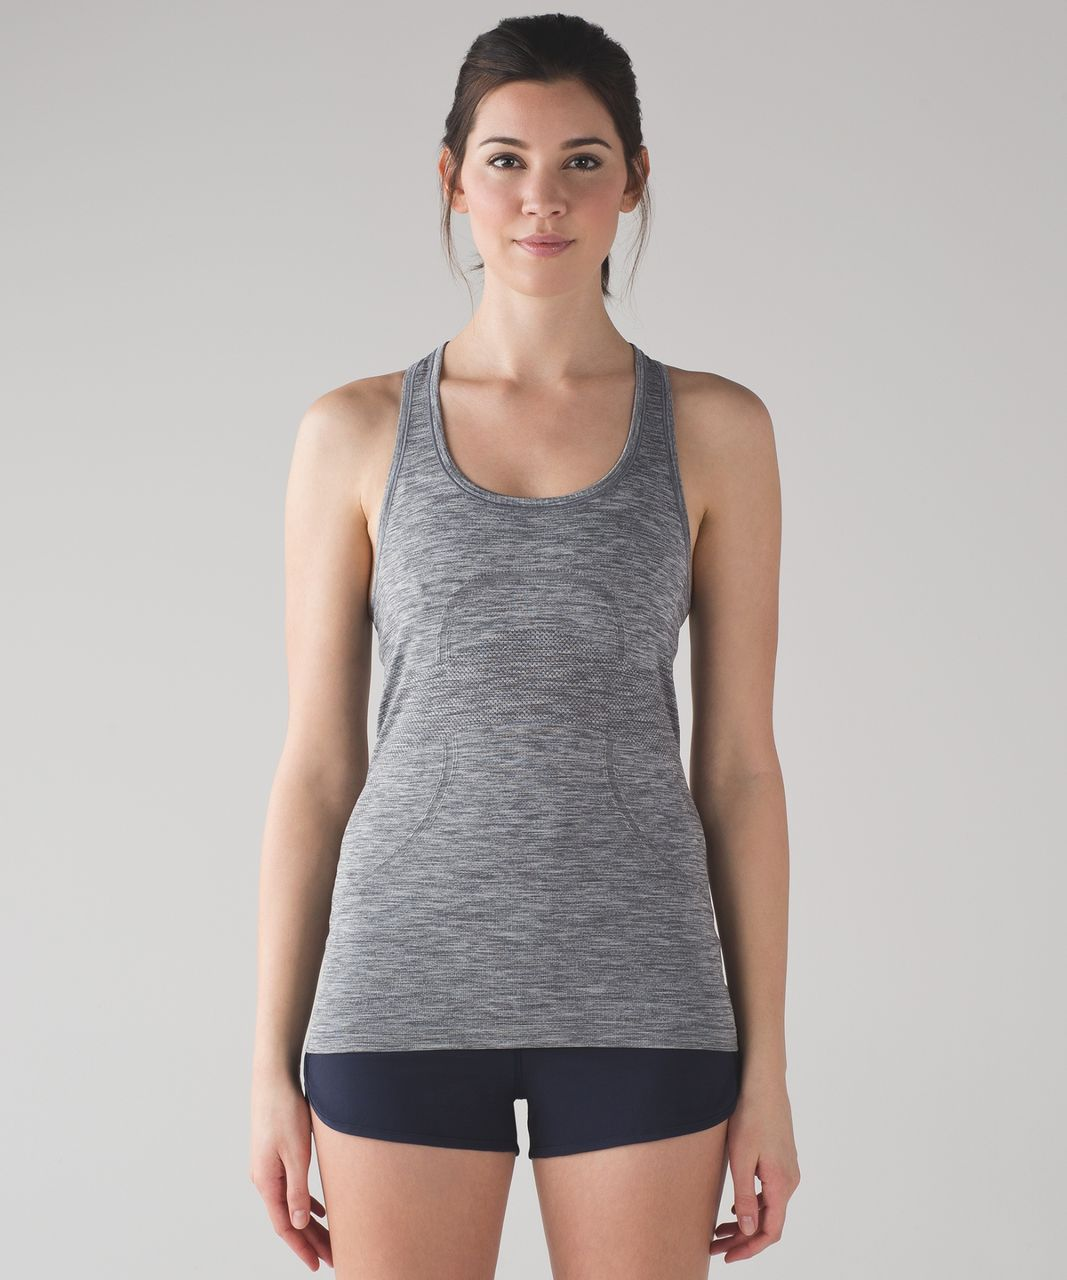 Lululemon Swiftly Tech Racerback - Slate / White